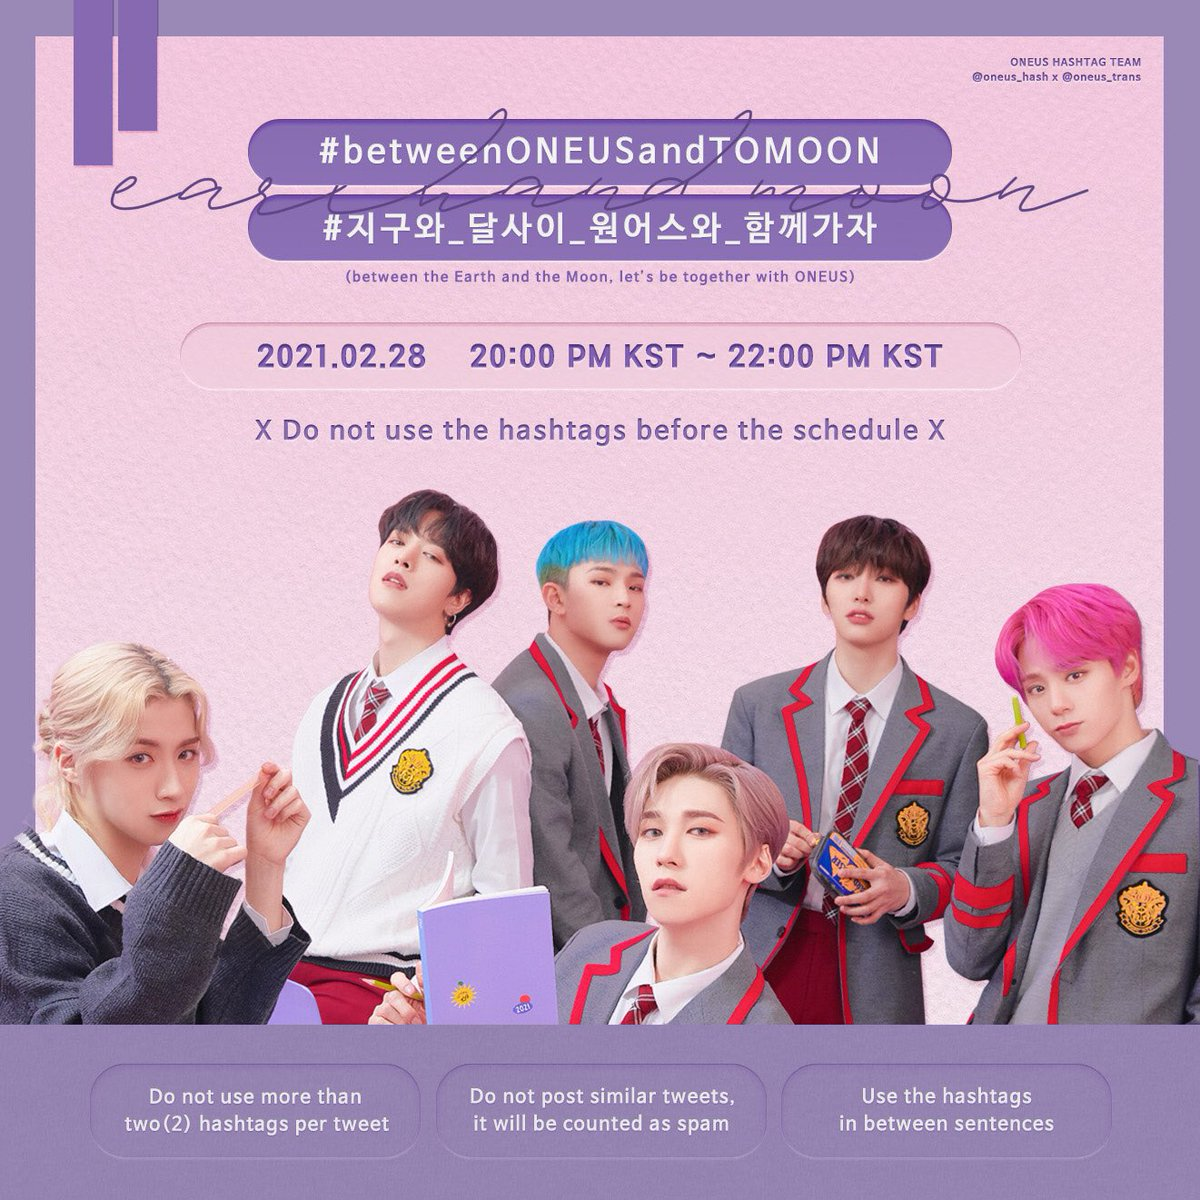 🌎❤️🌙 Trending Party for #ONEUS' First Online Fanmeeting <Between the Earth and the Moon>   📆2021.02.28 08:00 - 10:00 PM KST #/BetweenONEUSandTOMOON #/지구와_달사이_원어스와_함께가자  ❌❌ DO NOT USE THE HASHTAG BEFORE THE SCHEDULE INCLUDING DURING THE CONCERT❌❌  @Oneus_hash